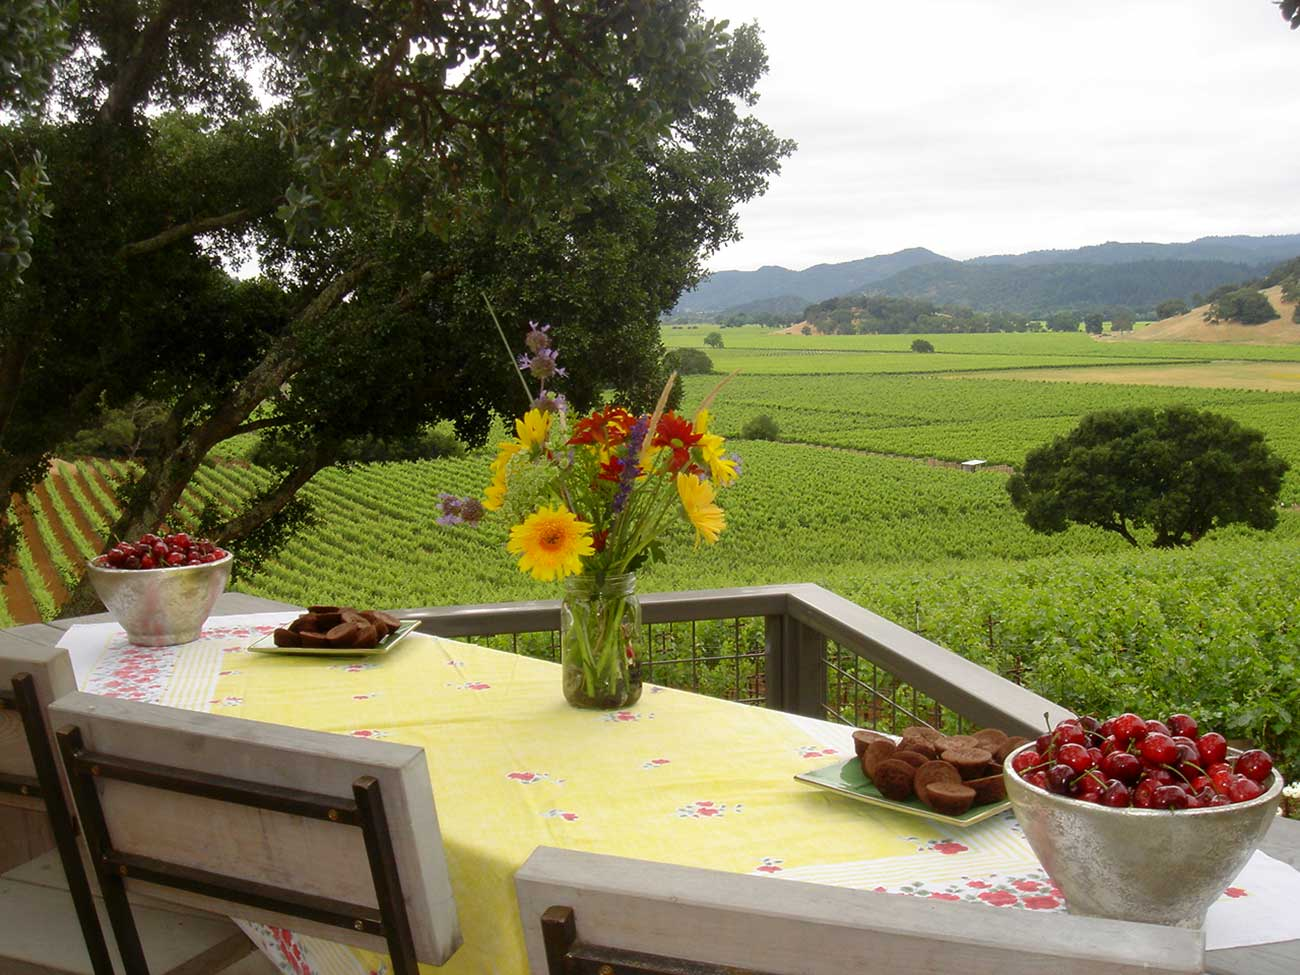 Table with fruit and flowers overlooking vineyards in Napa valley